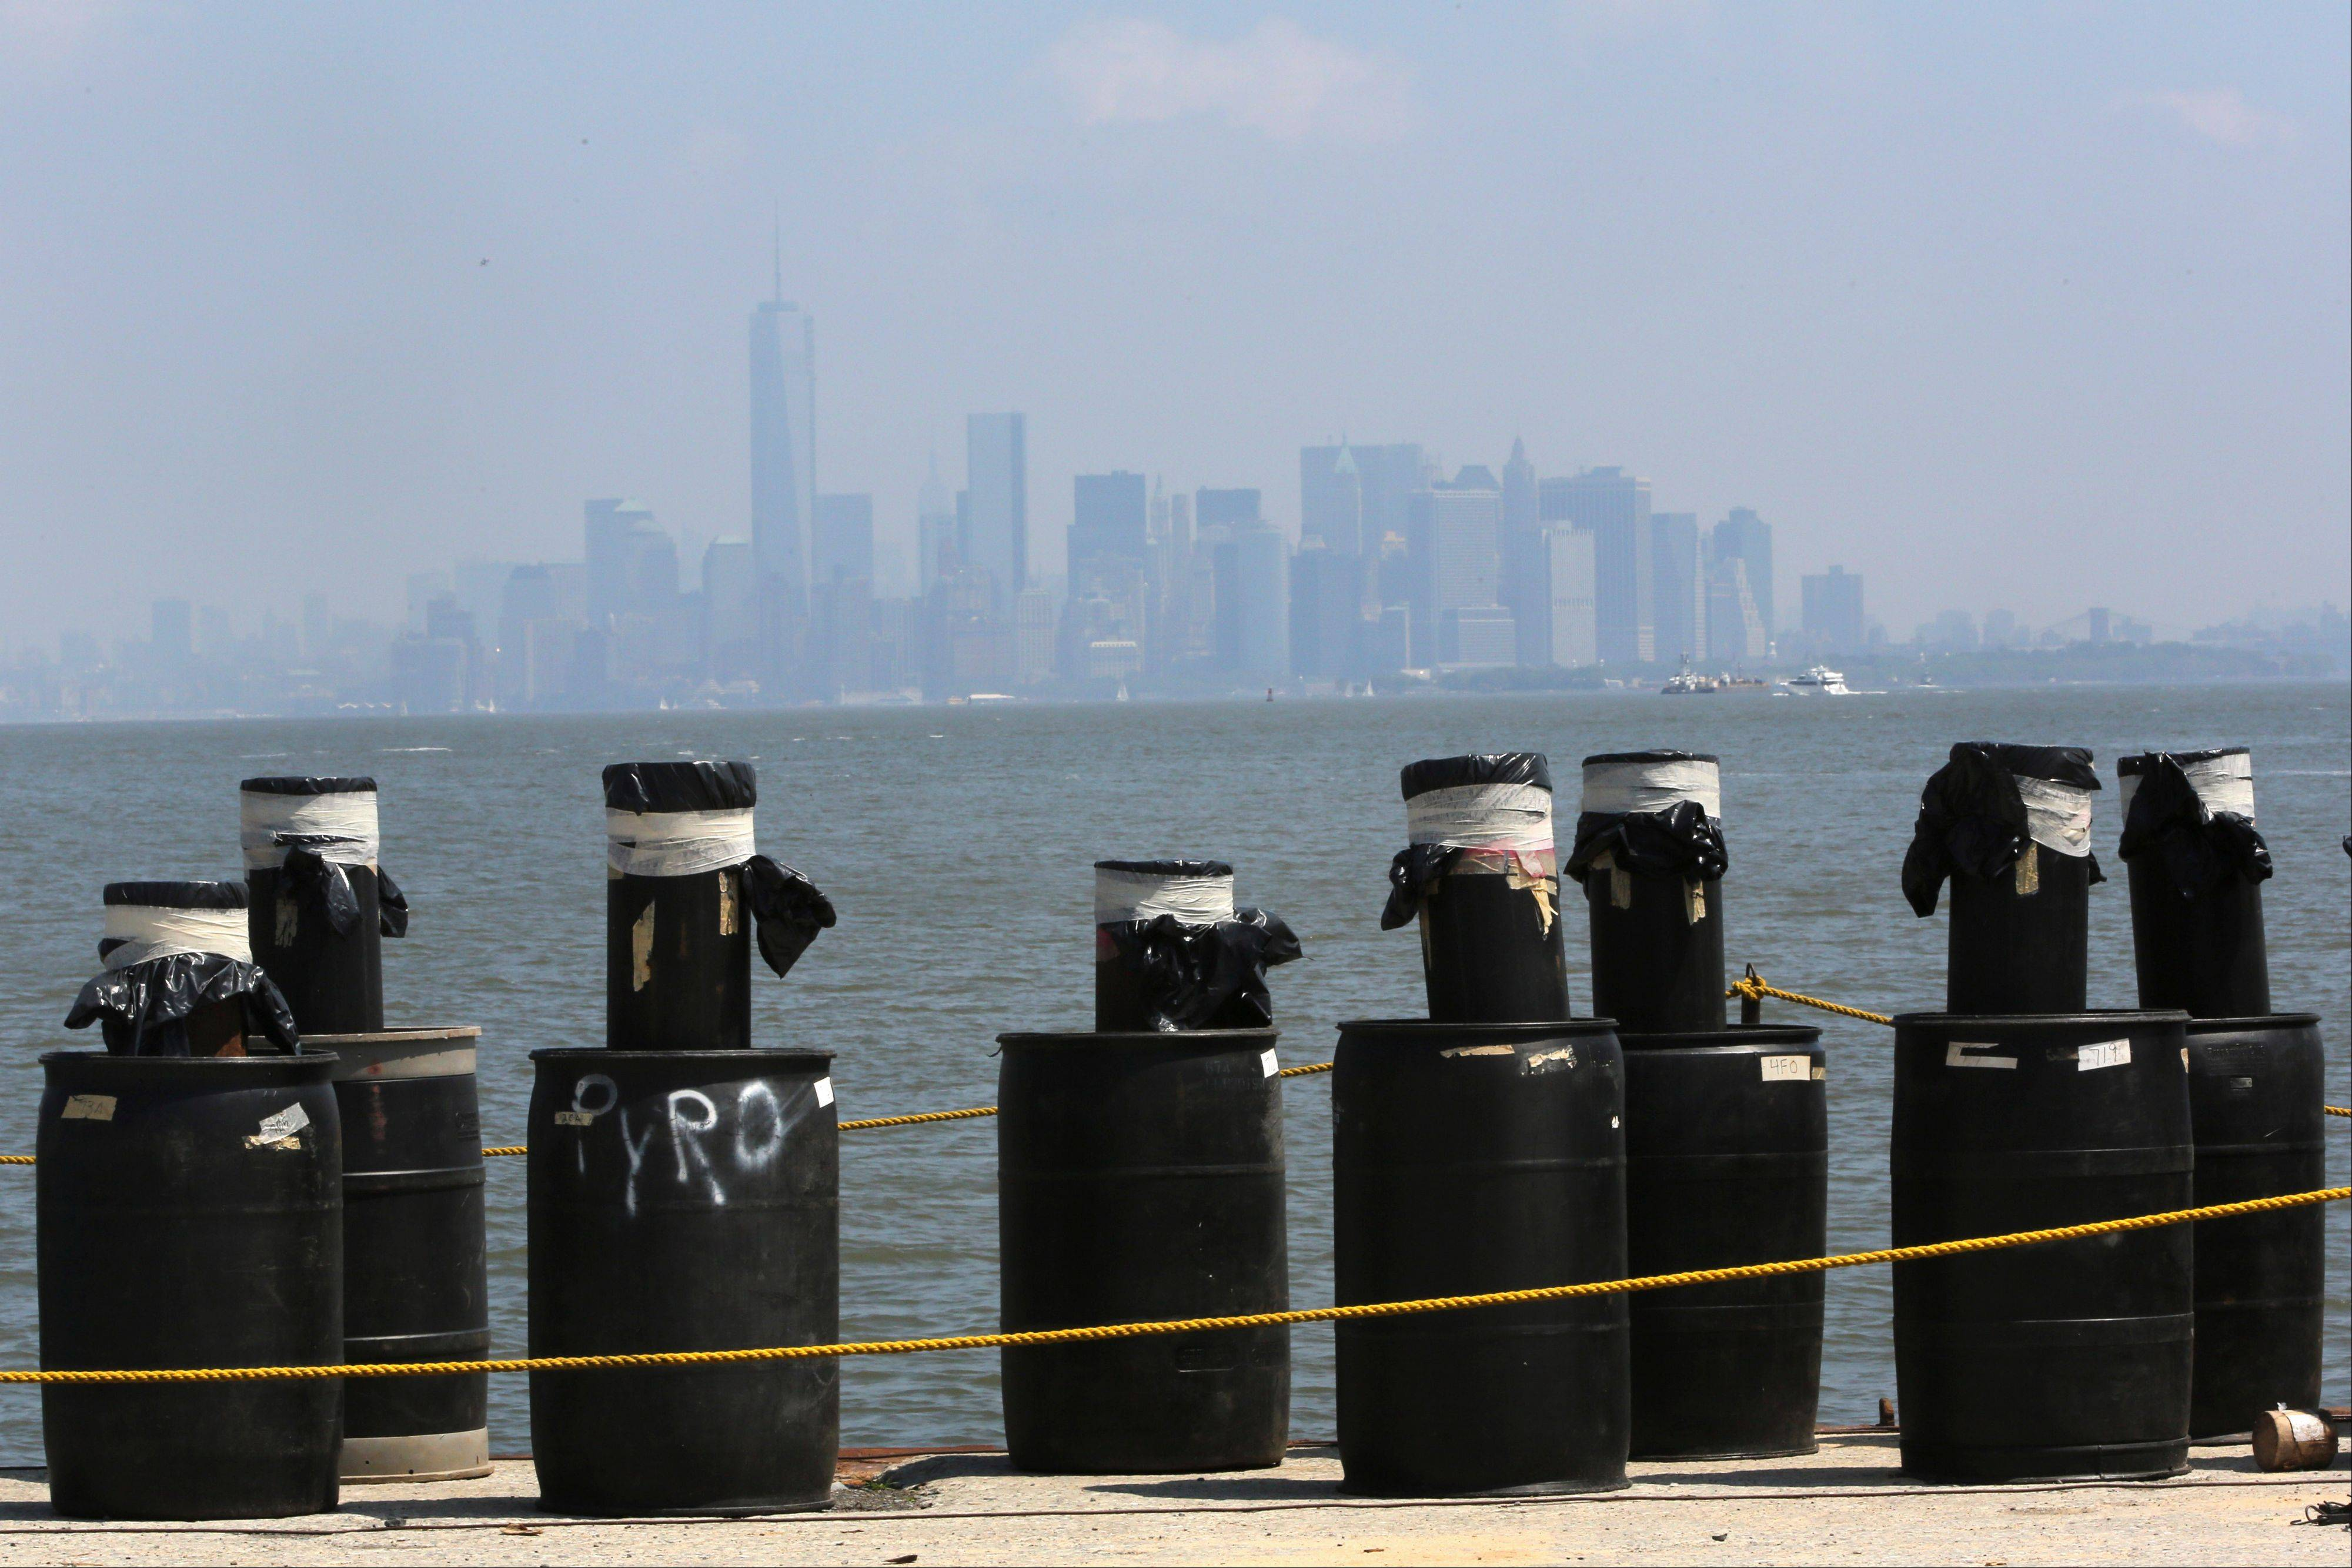 Mortars placed on a barge docked in the Staten Island borough of New York are in front of the hazy lower Manhattan skyline on Saturday,